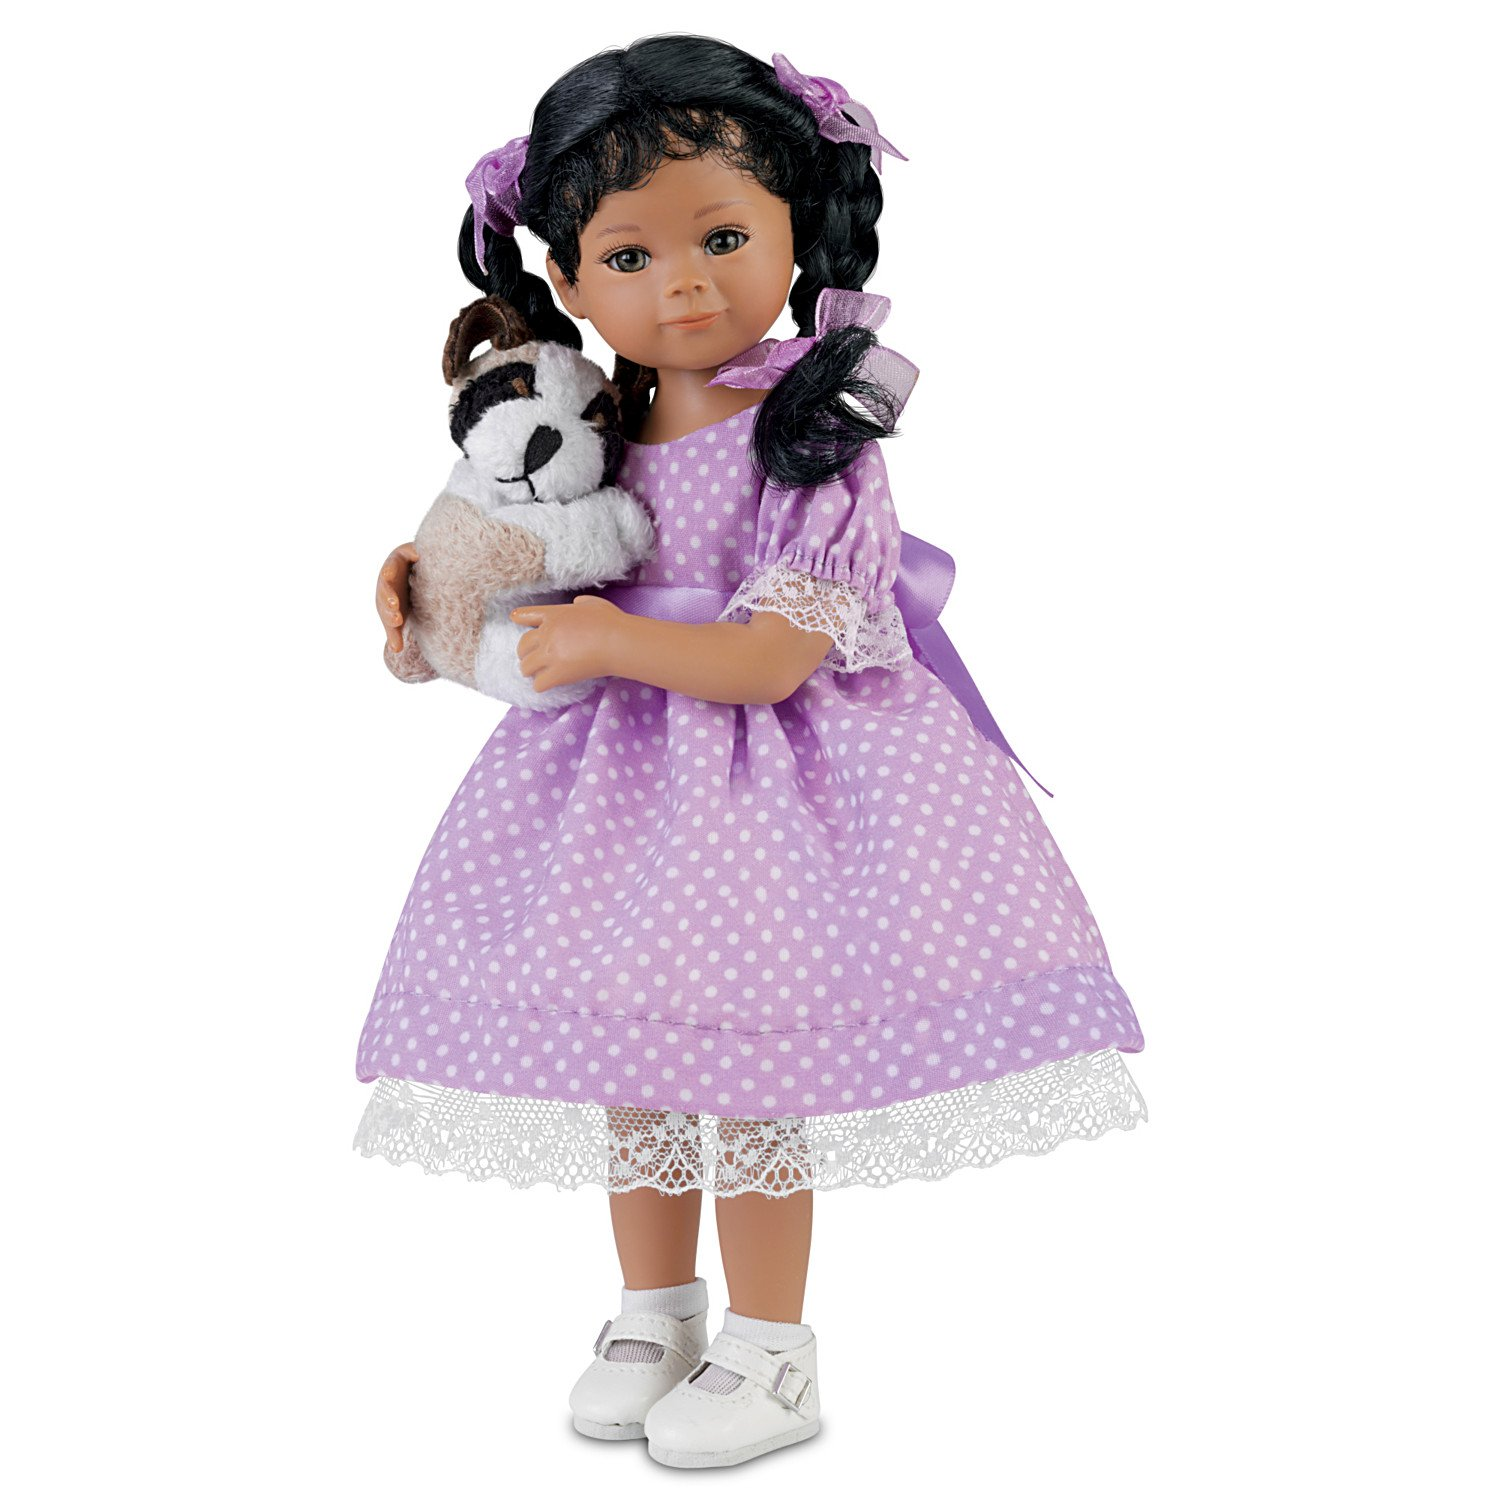 The Ashton-Drake Galleries Mayra Garza Poseable Child Doll with Plush Puppy: Kimani And Her Puppy